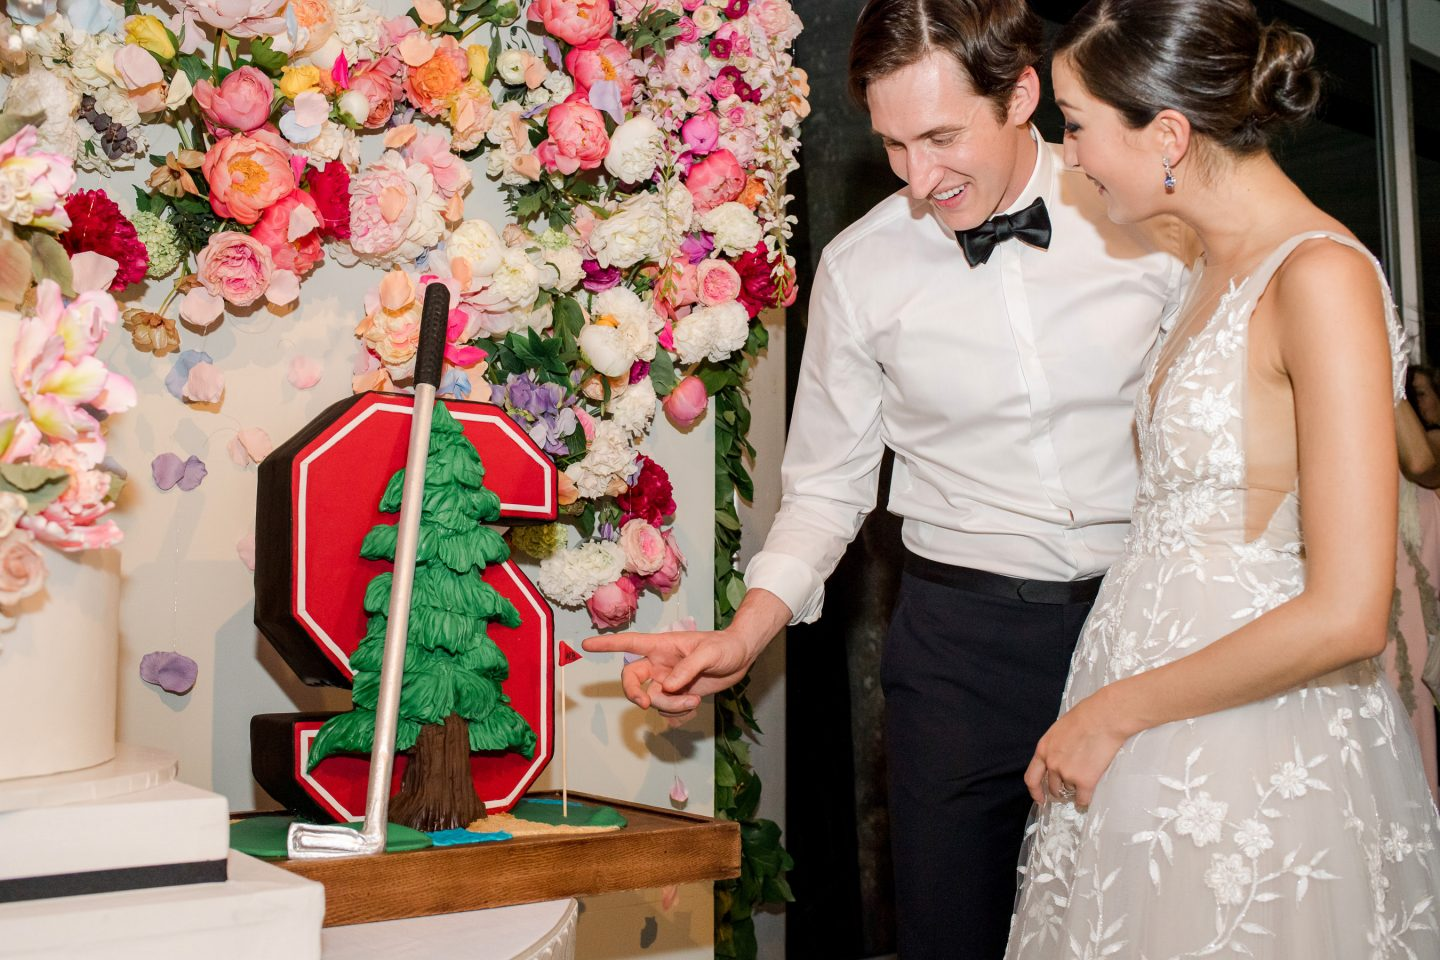 Groom's cake cutting at this Sea Island wedding weekend in Georgia, USA | Photo by Liz Banfield